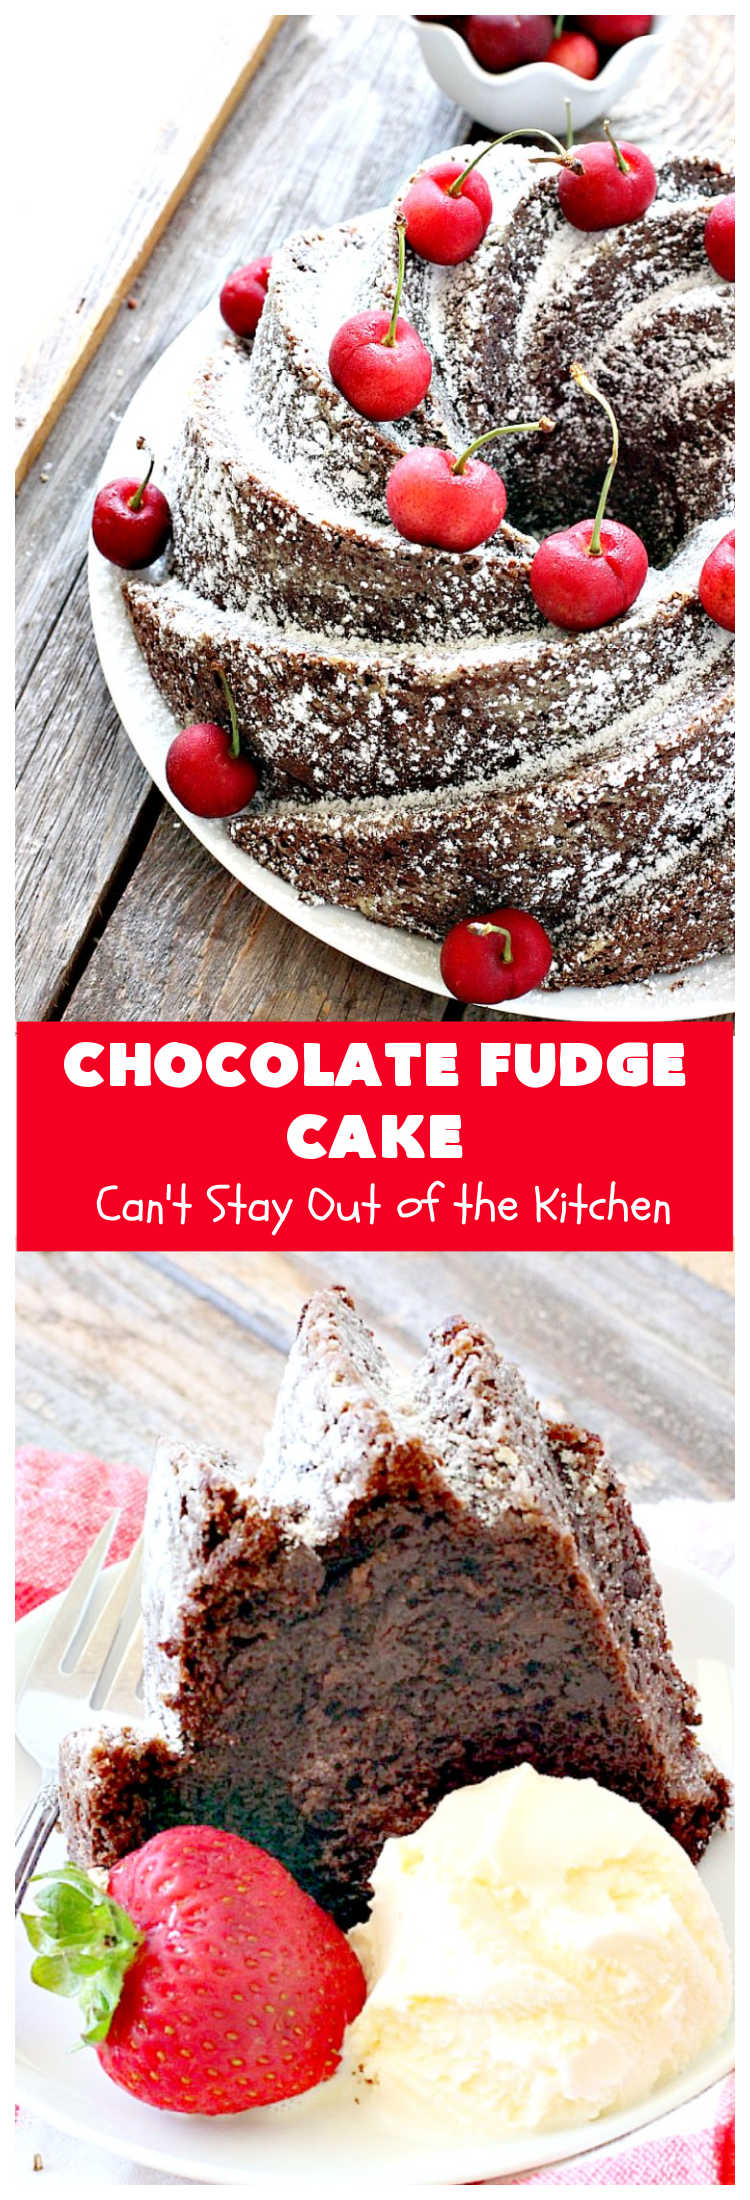 Chocolate Fudge Cake | Can't Stay Out of the Kitchen | This fabulous #chocolate #cake is incredibly fudgy since it includes a box of #ChocolatePudding and #ChocolateChips in the batter. Perfect for potlucks, backyard barbecues & #holiday parties. Quick & easy #dessert. #Holiday #HolidayDessert #ChocolateDessert #ChocolateFudgeCake #fudge